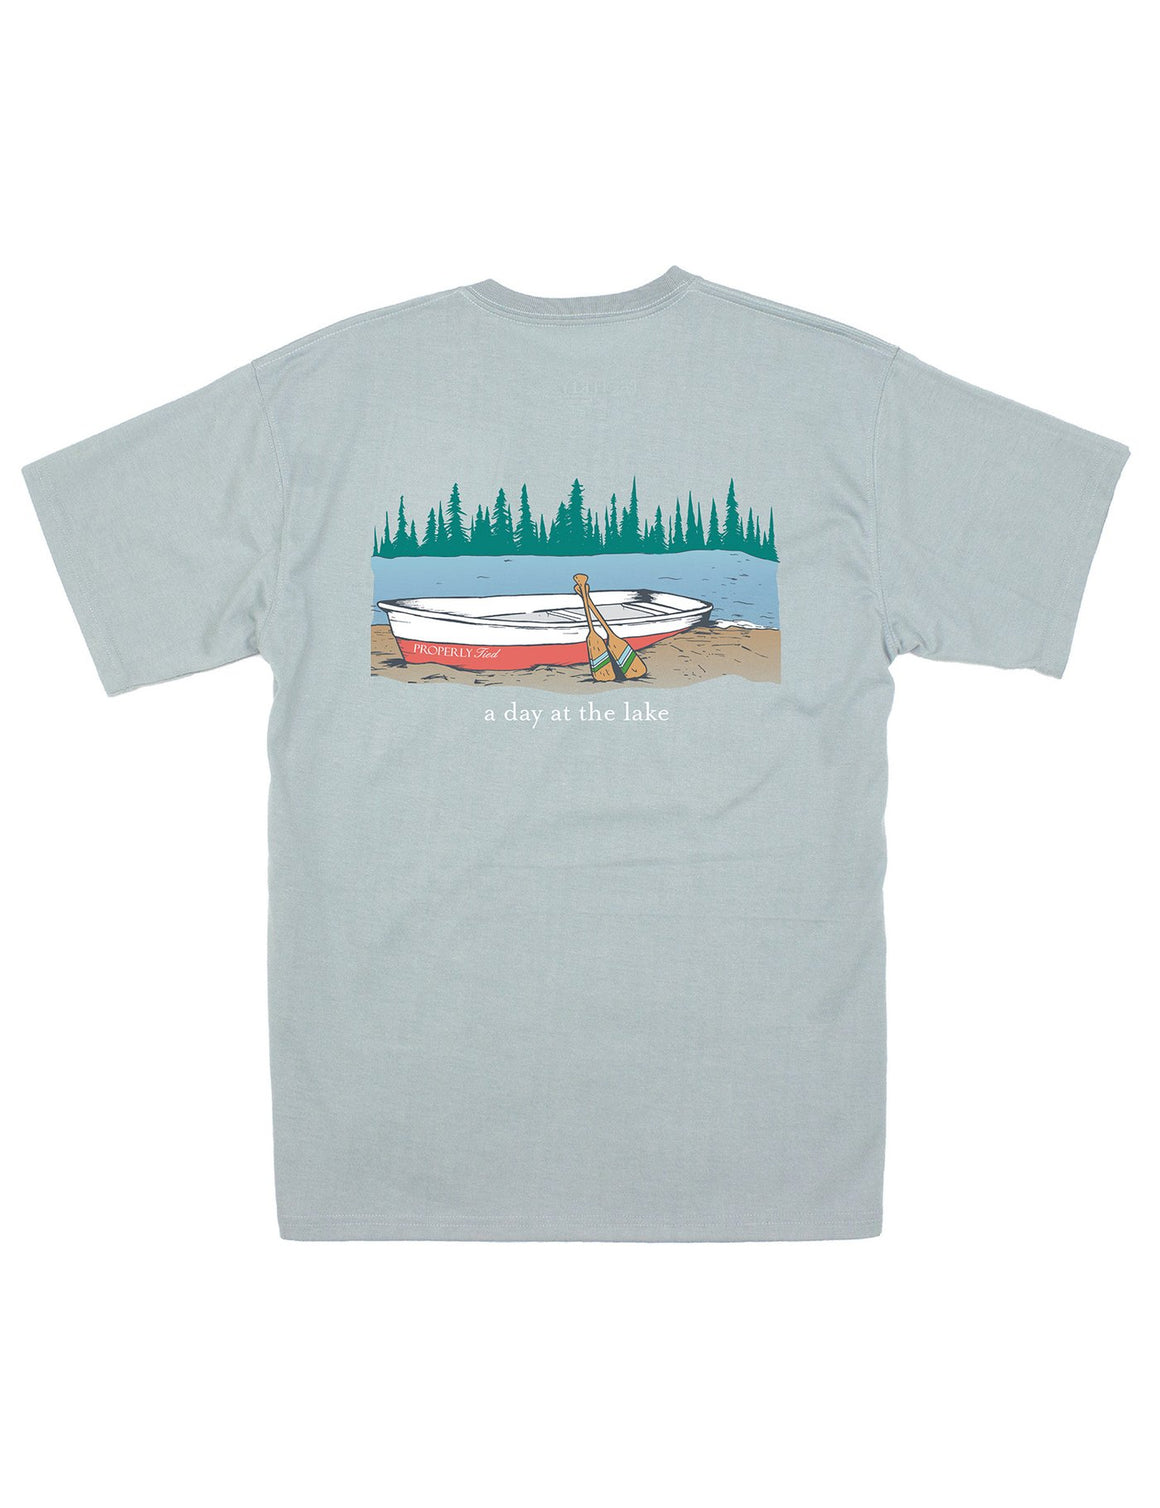 A Day at the Lake SS TShirt - Grey Properly Tied